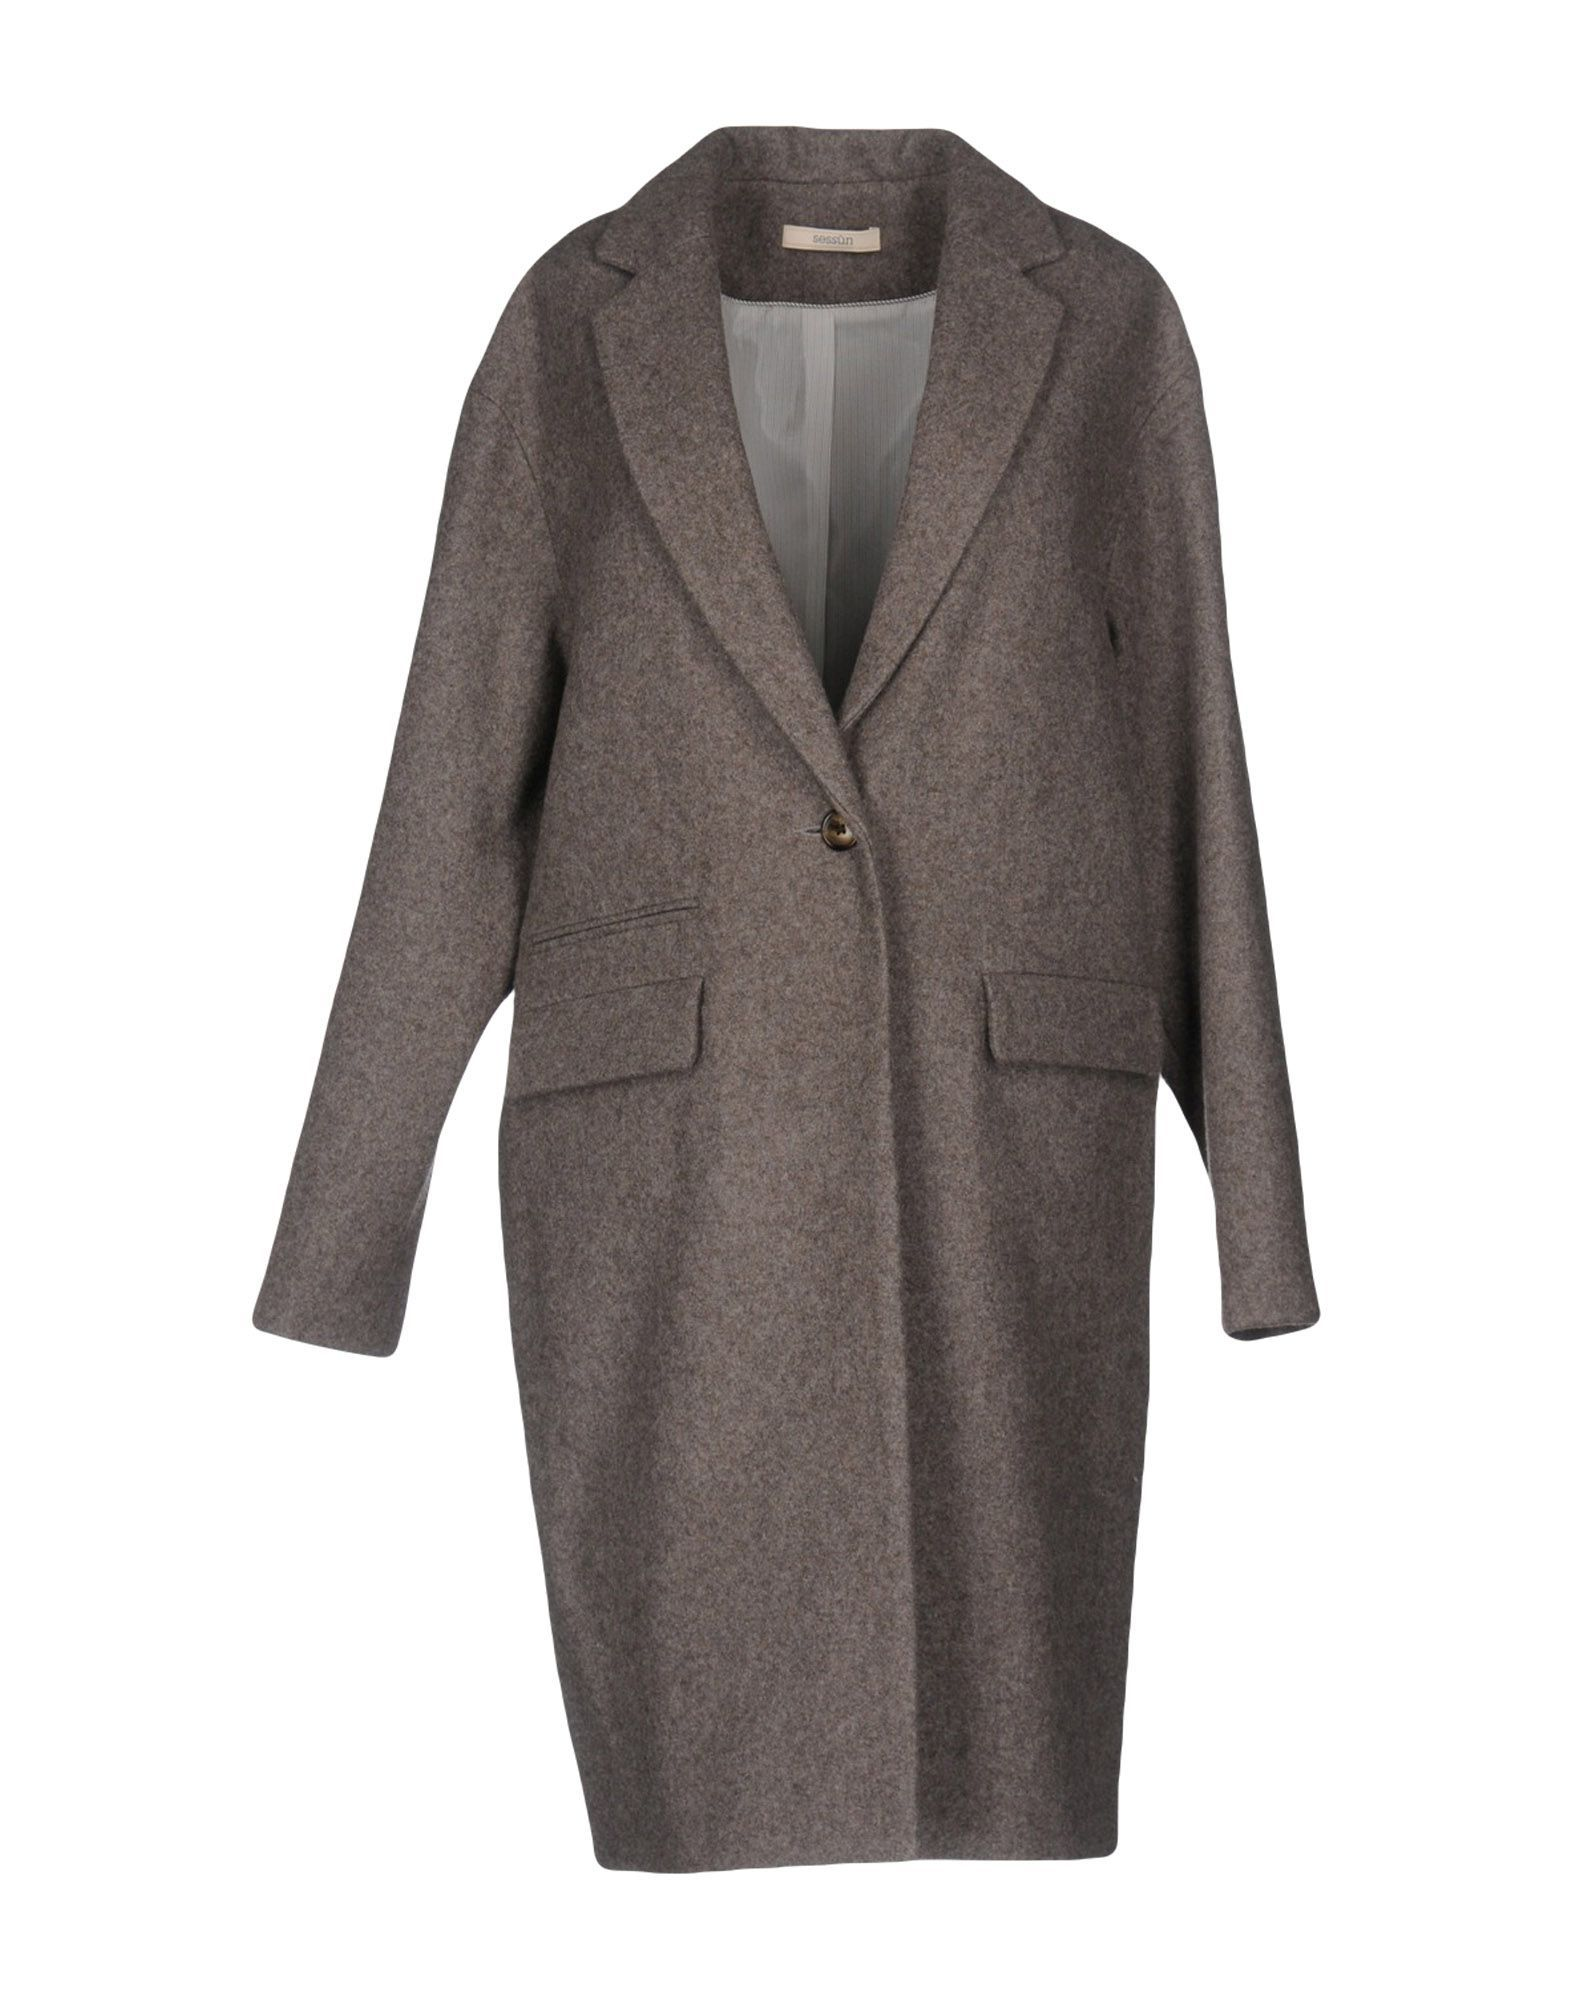 Sessun Khaki Wool Overcoat